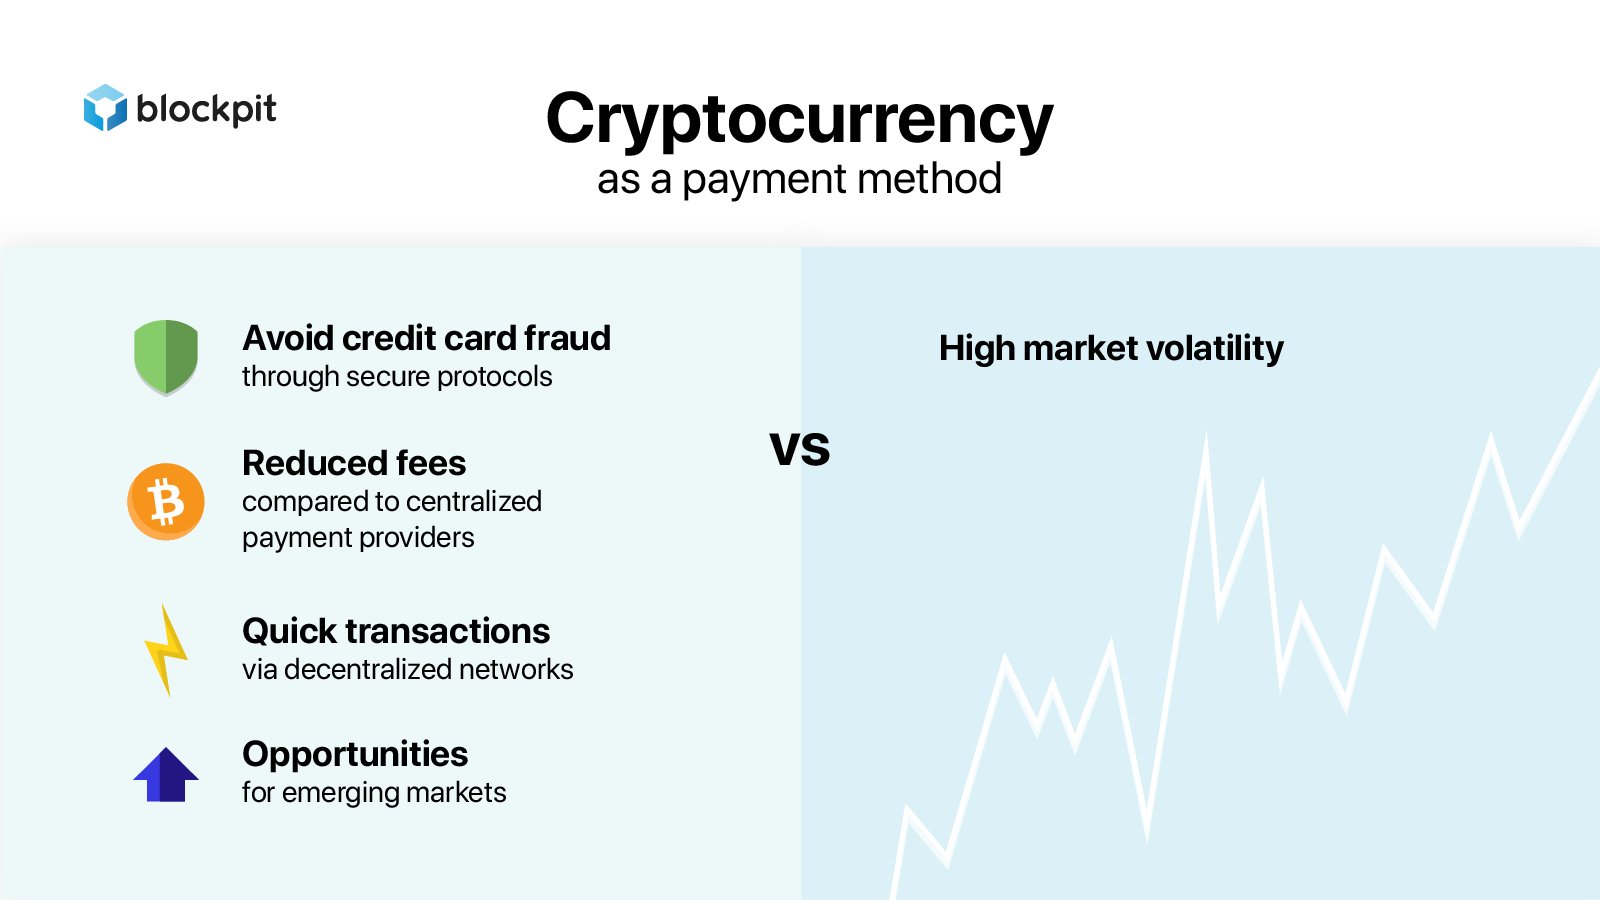 While crypto payments offer a lot of positive features, the high market volatility is a big con